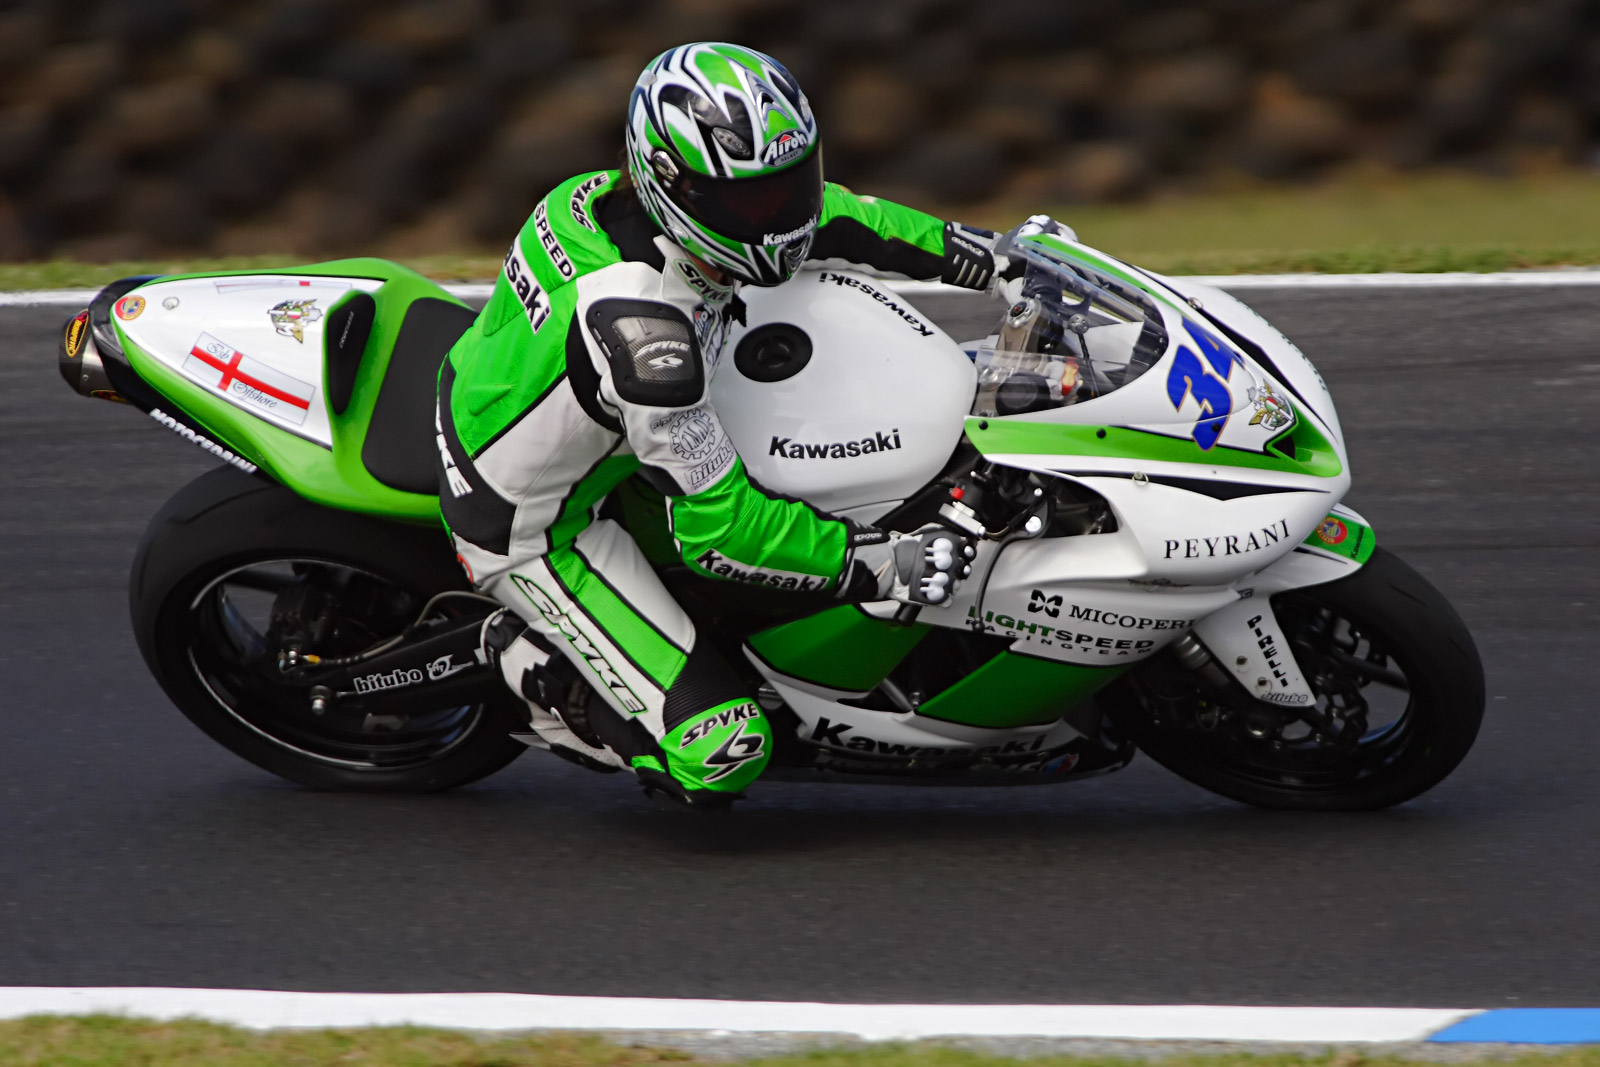 File:Motorcycle phillip island03.jpg  Wikipedia, the free